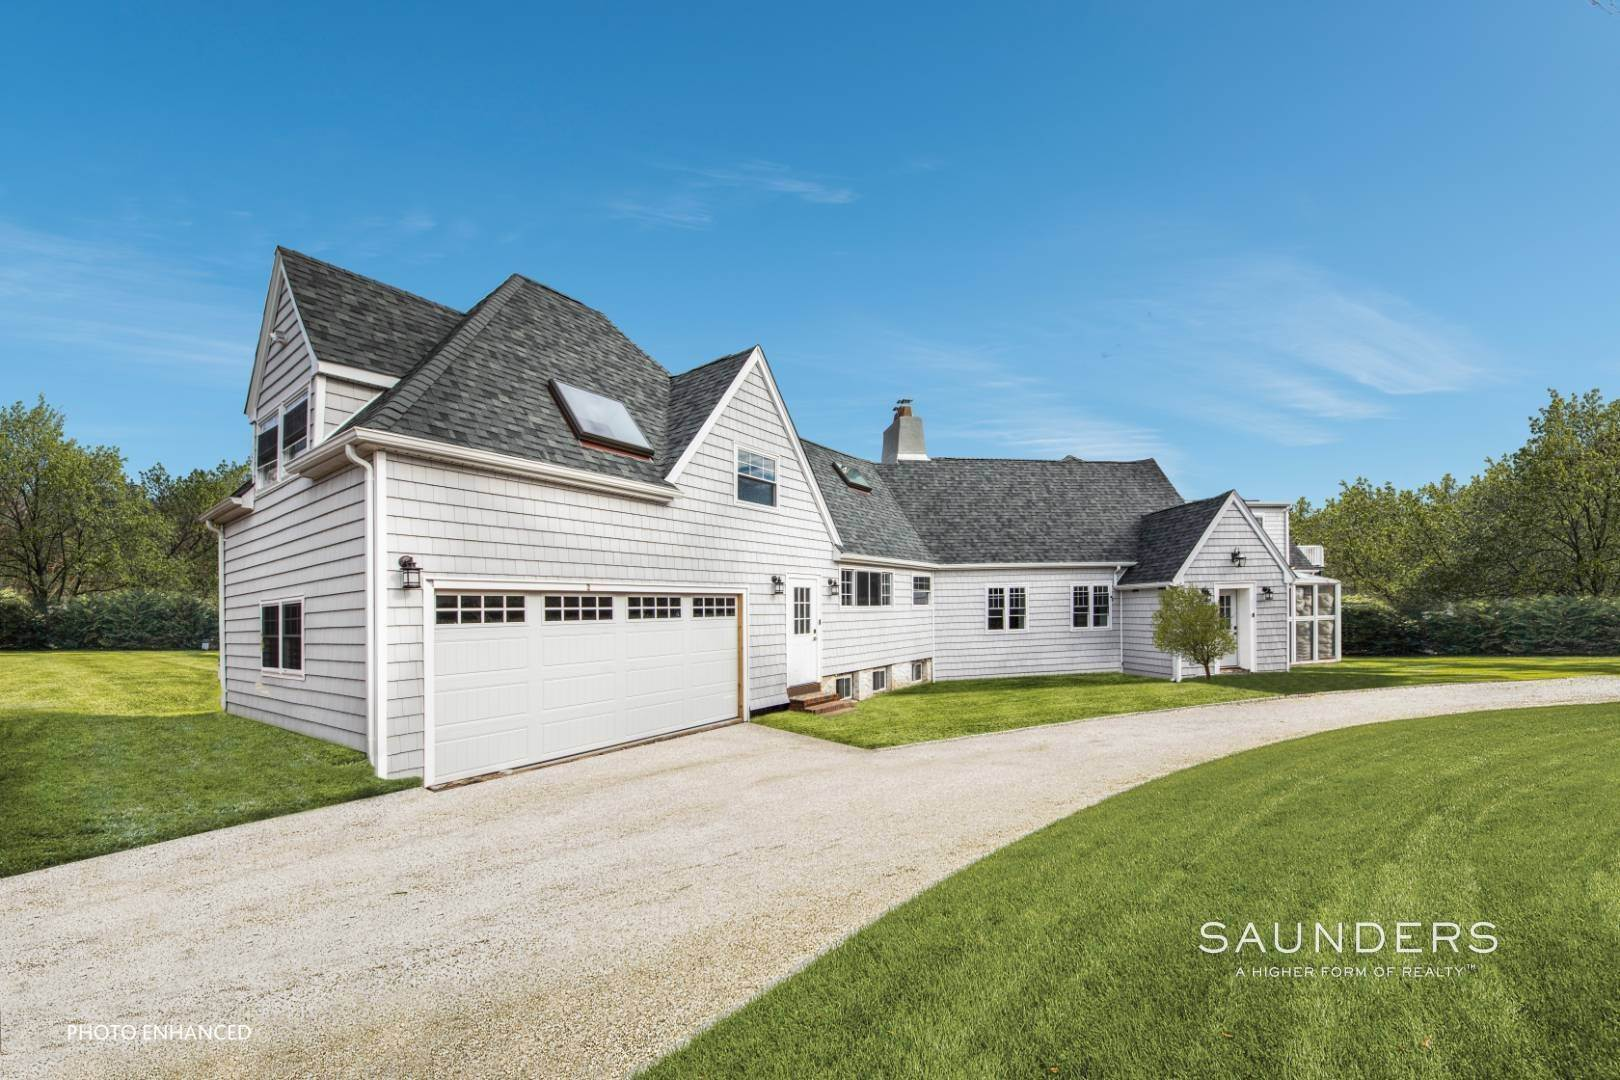 Single Family Homes for Sale at Montauk - New Custom Renovation 80 Essex Street, Montauk, East Hampton Town, NY 11954